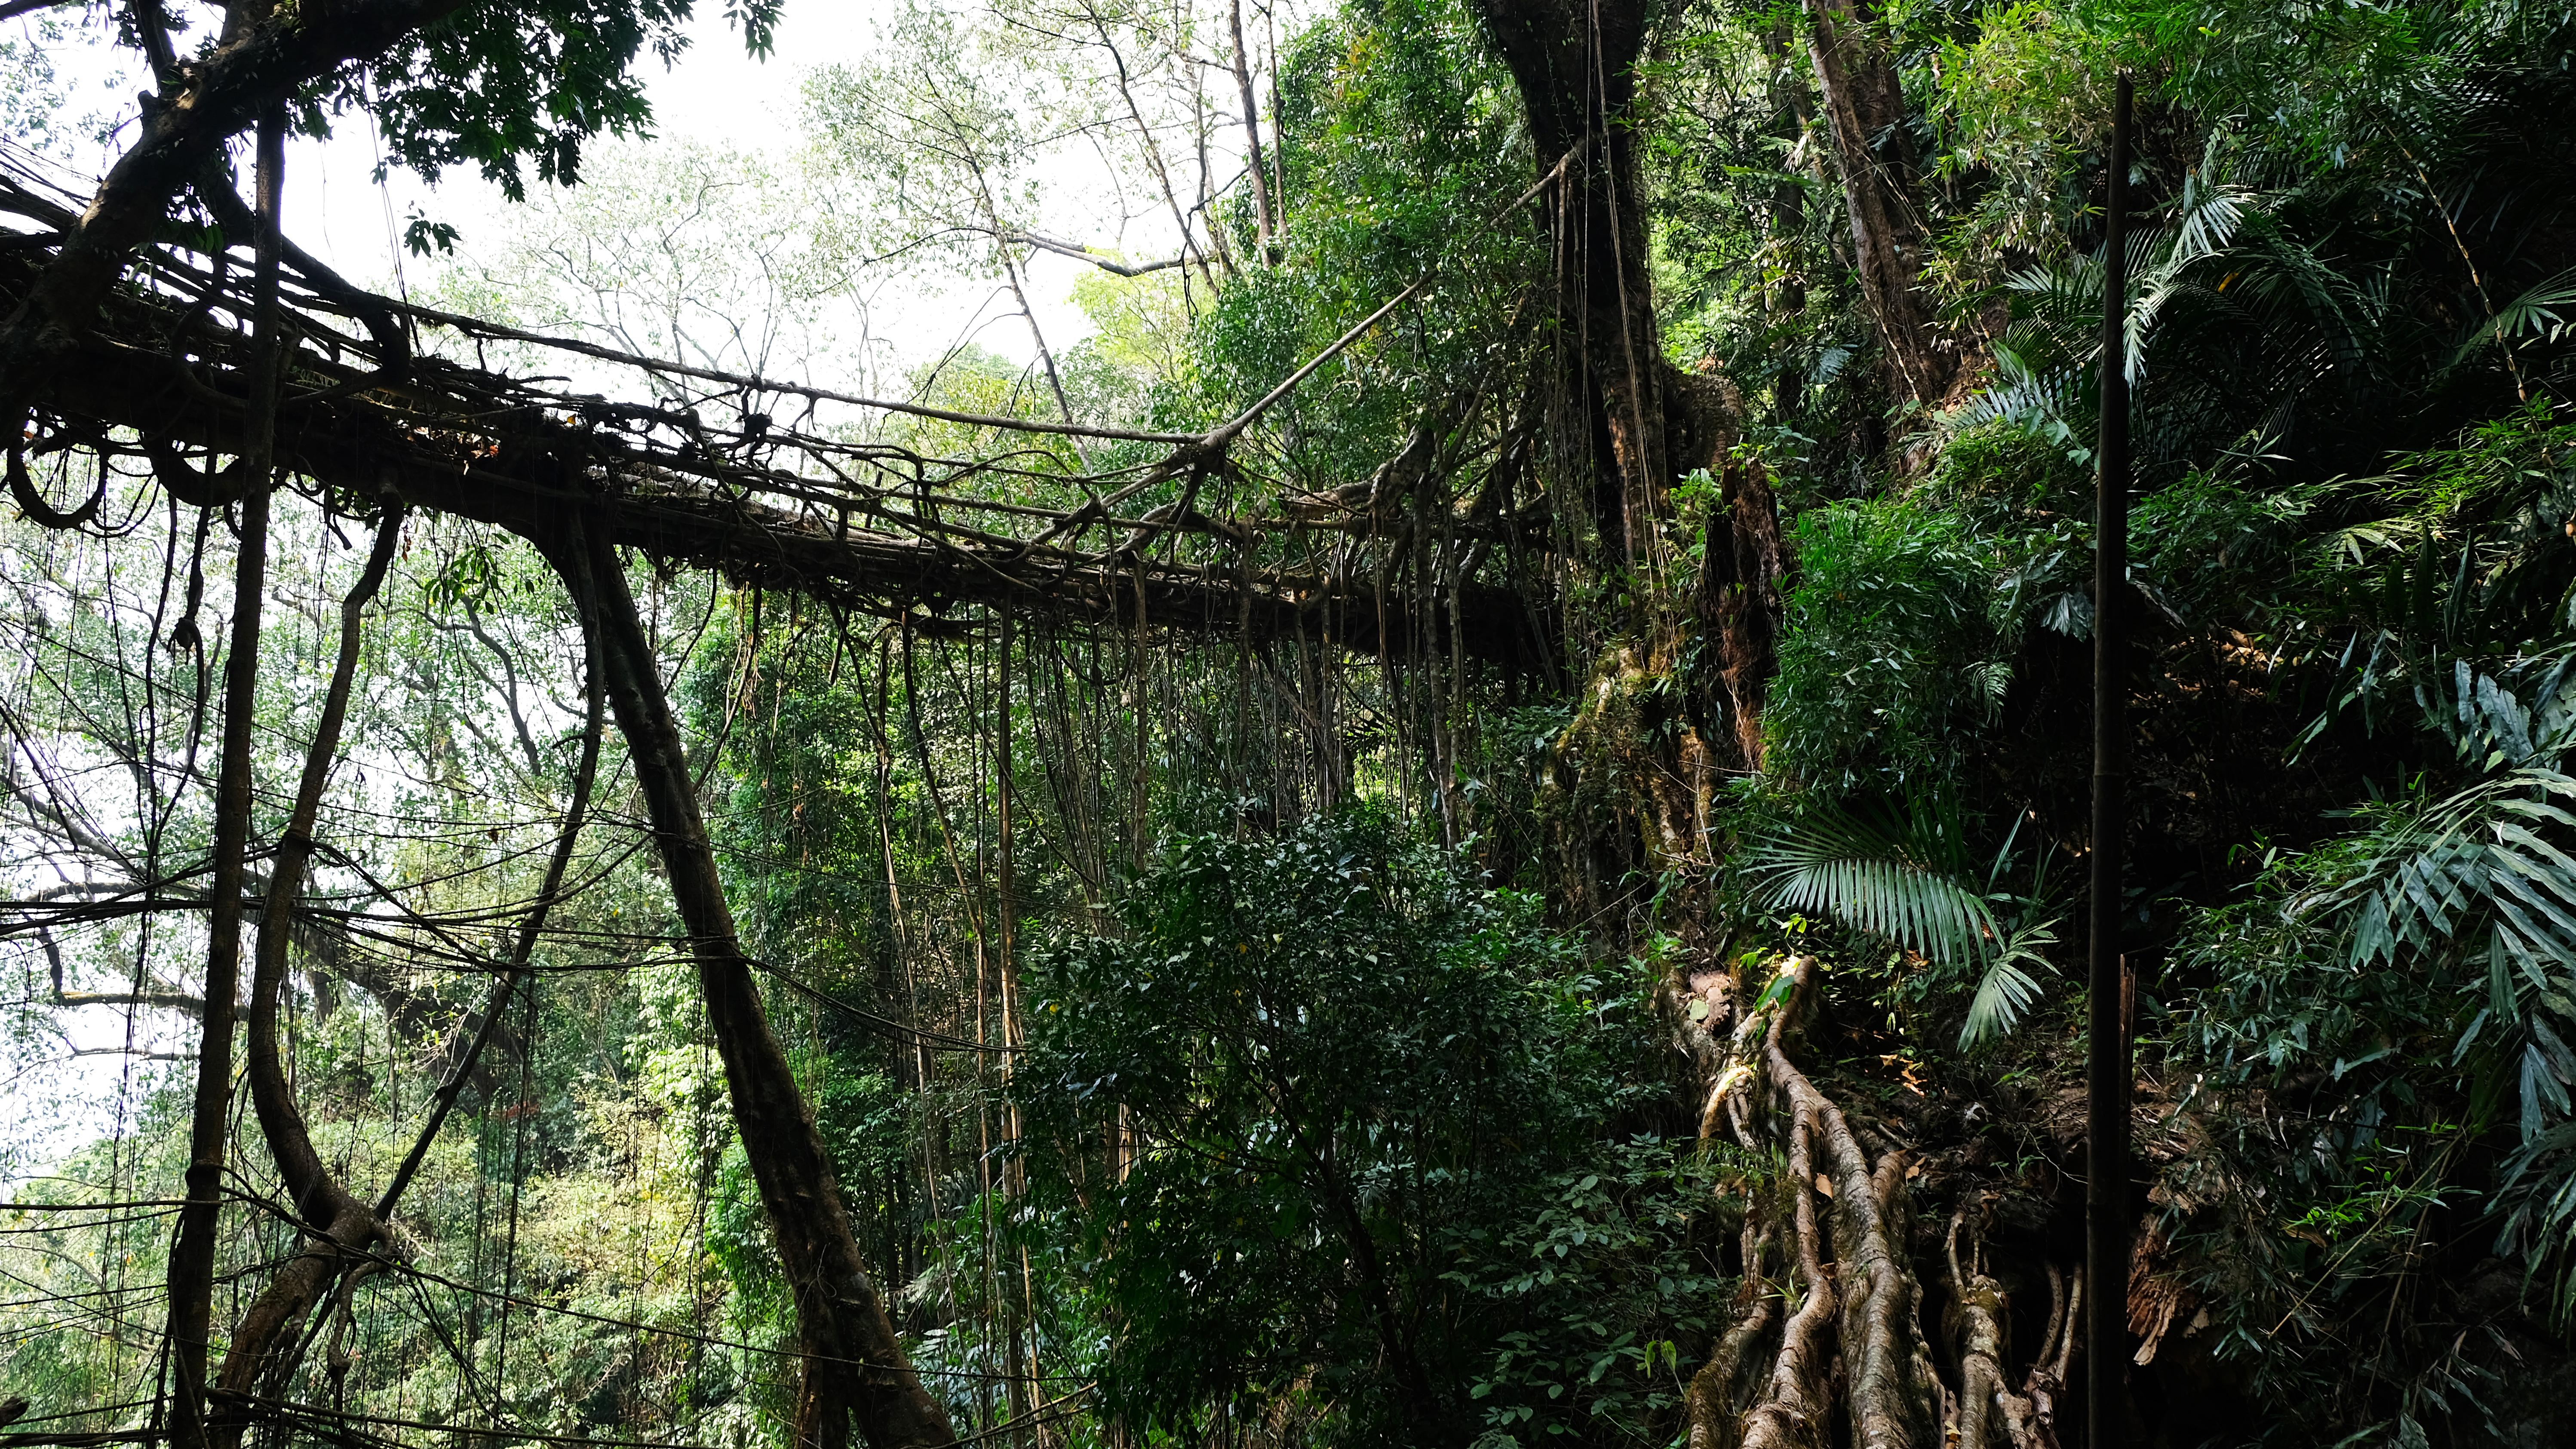 The so-called Meghalaya bridges often lead over steep valleys. Many are secured by railings and handrails also made from the aerial roots.